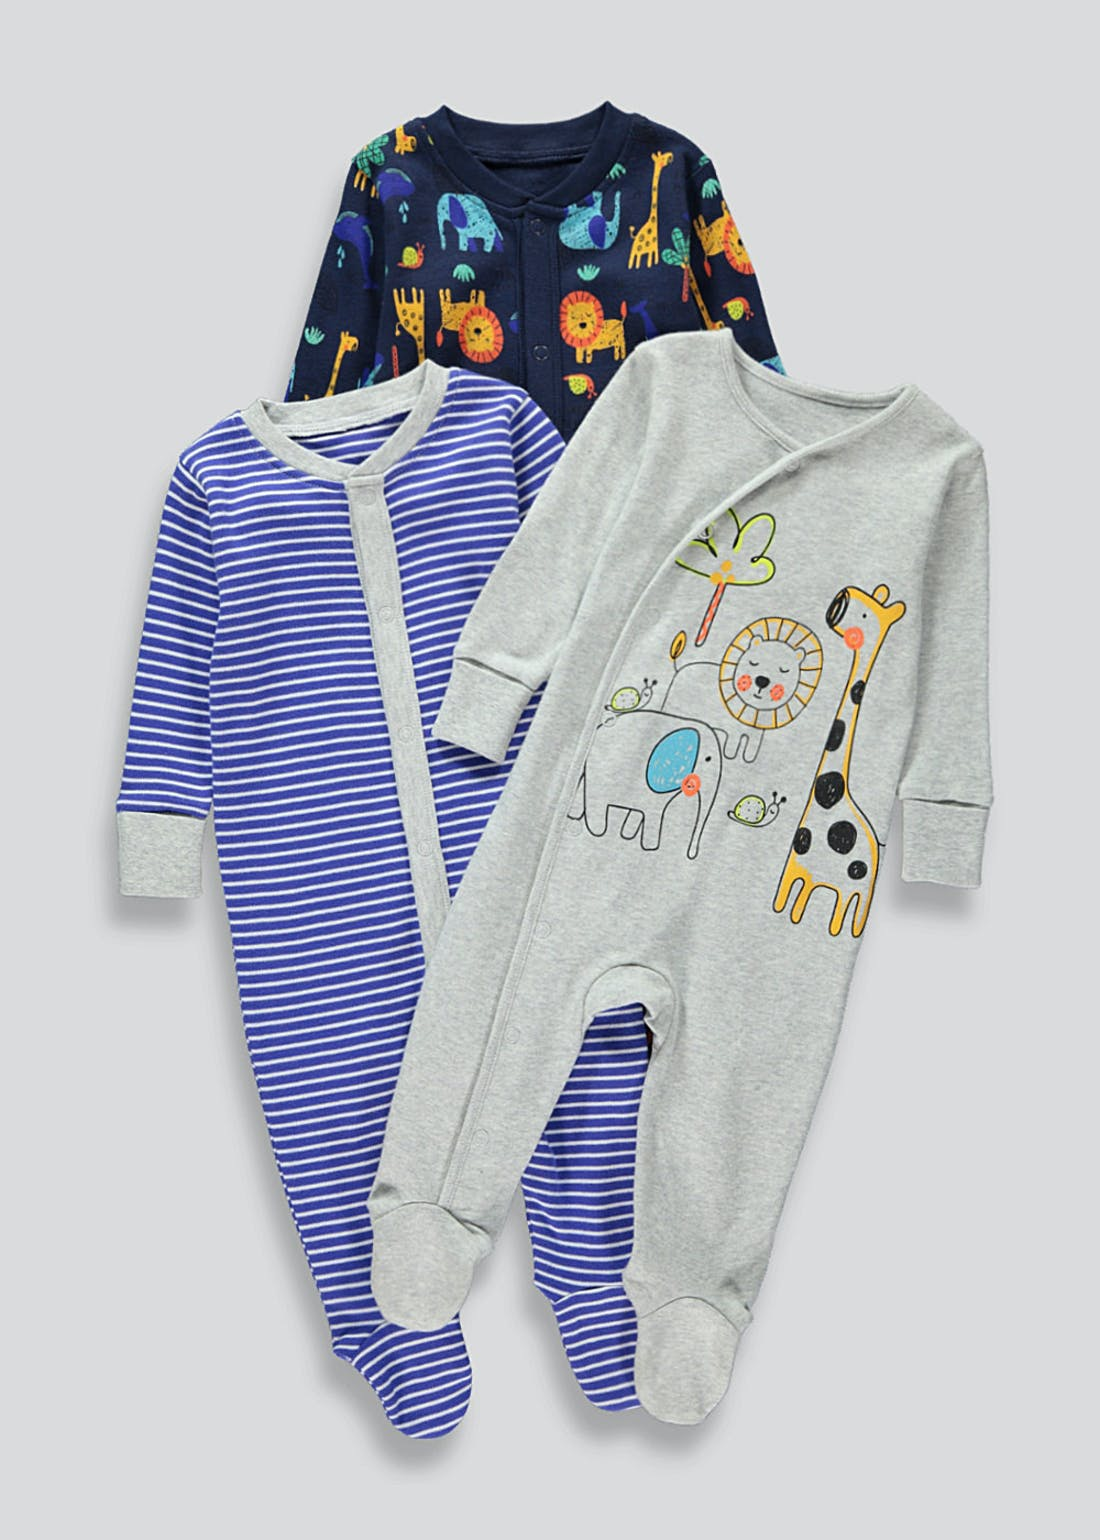 Boys 3 Pack Baby Grows (Tiny Baby-18mths)